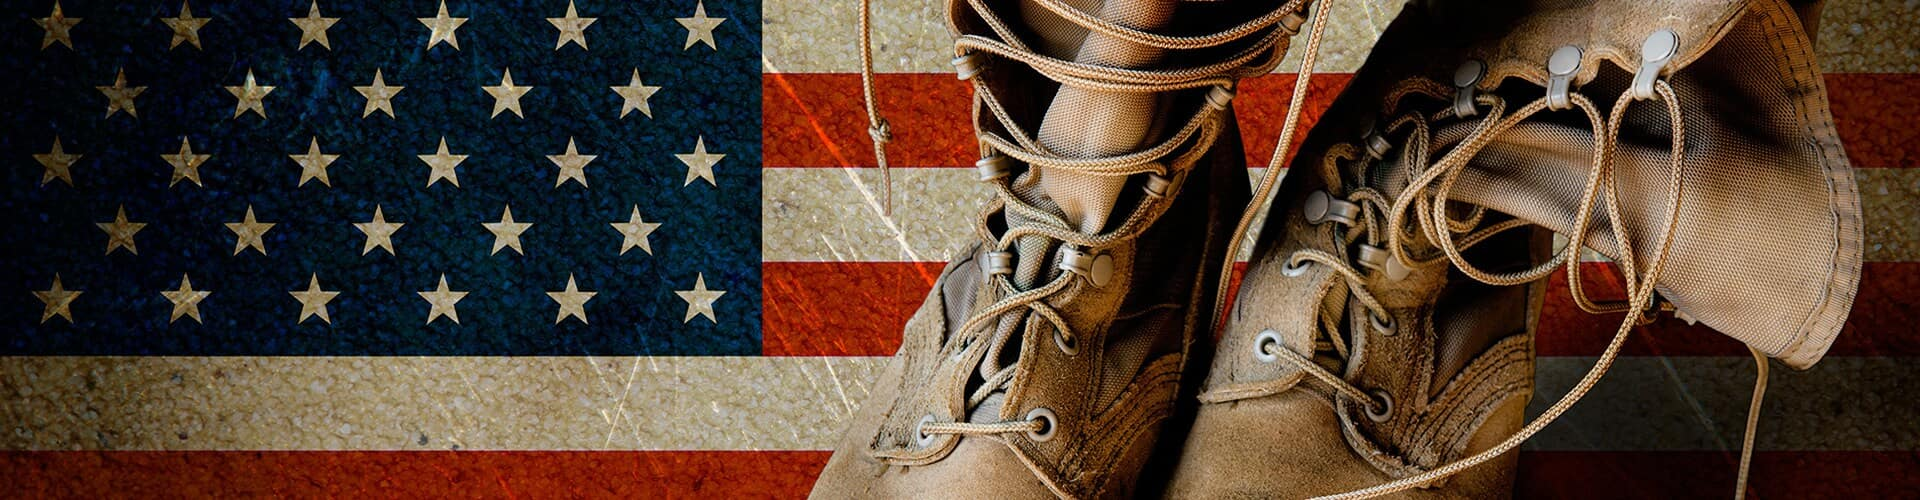 Pair of Worn boots and American Flag Background